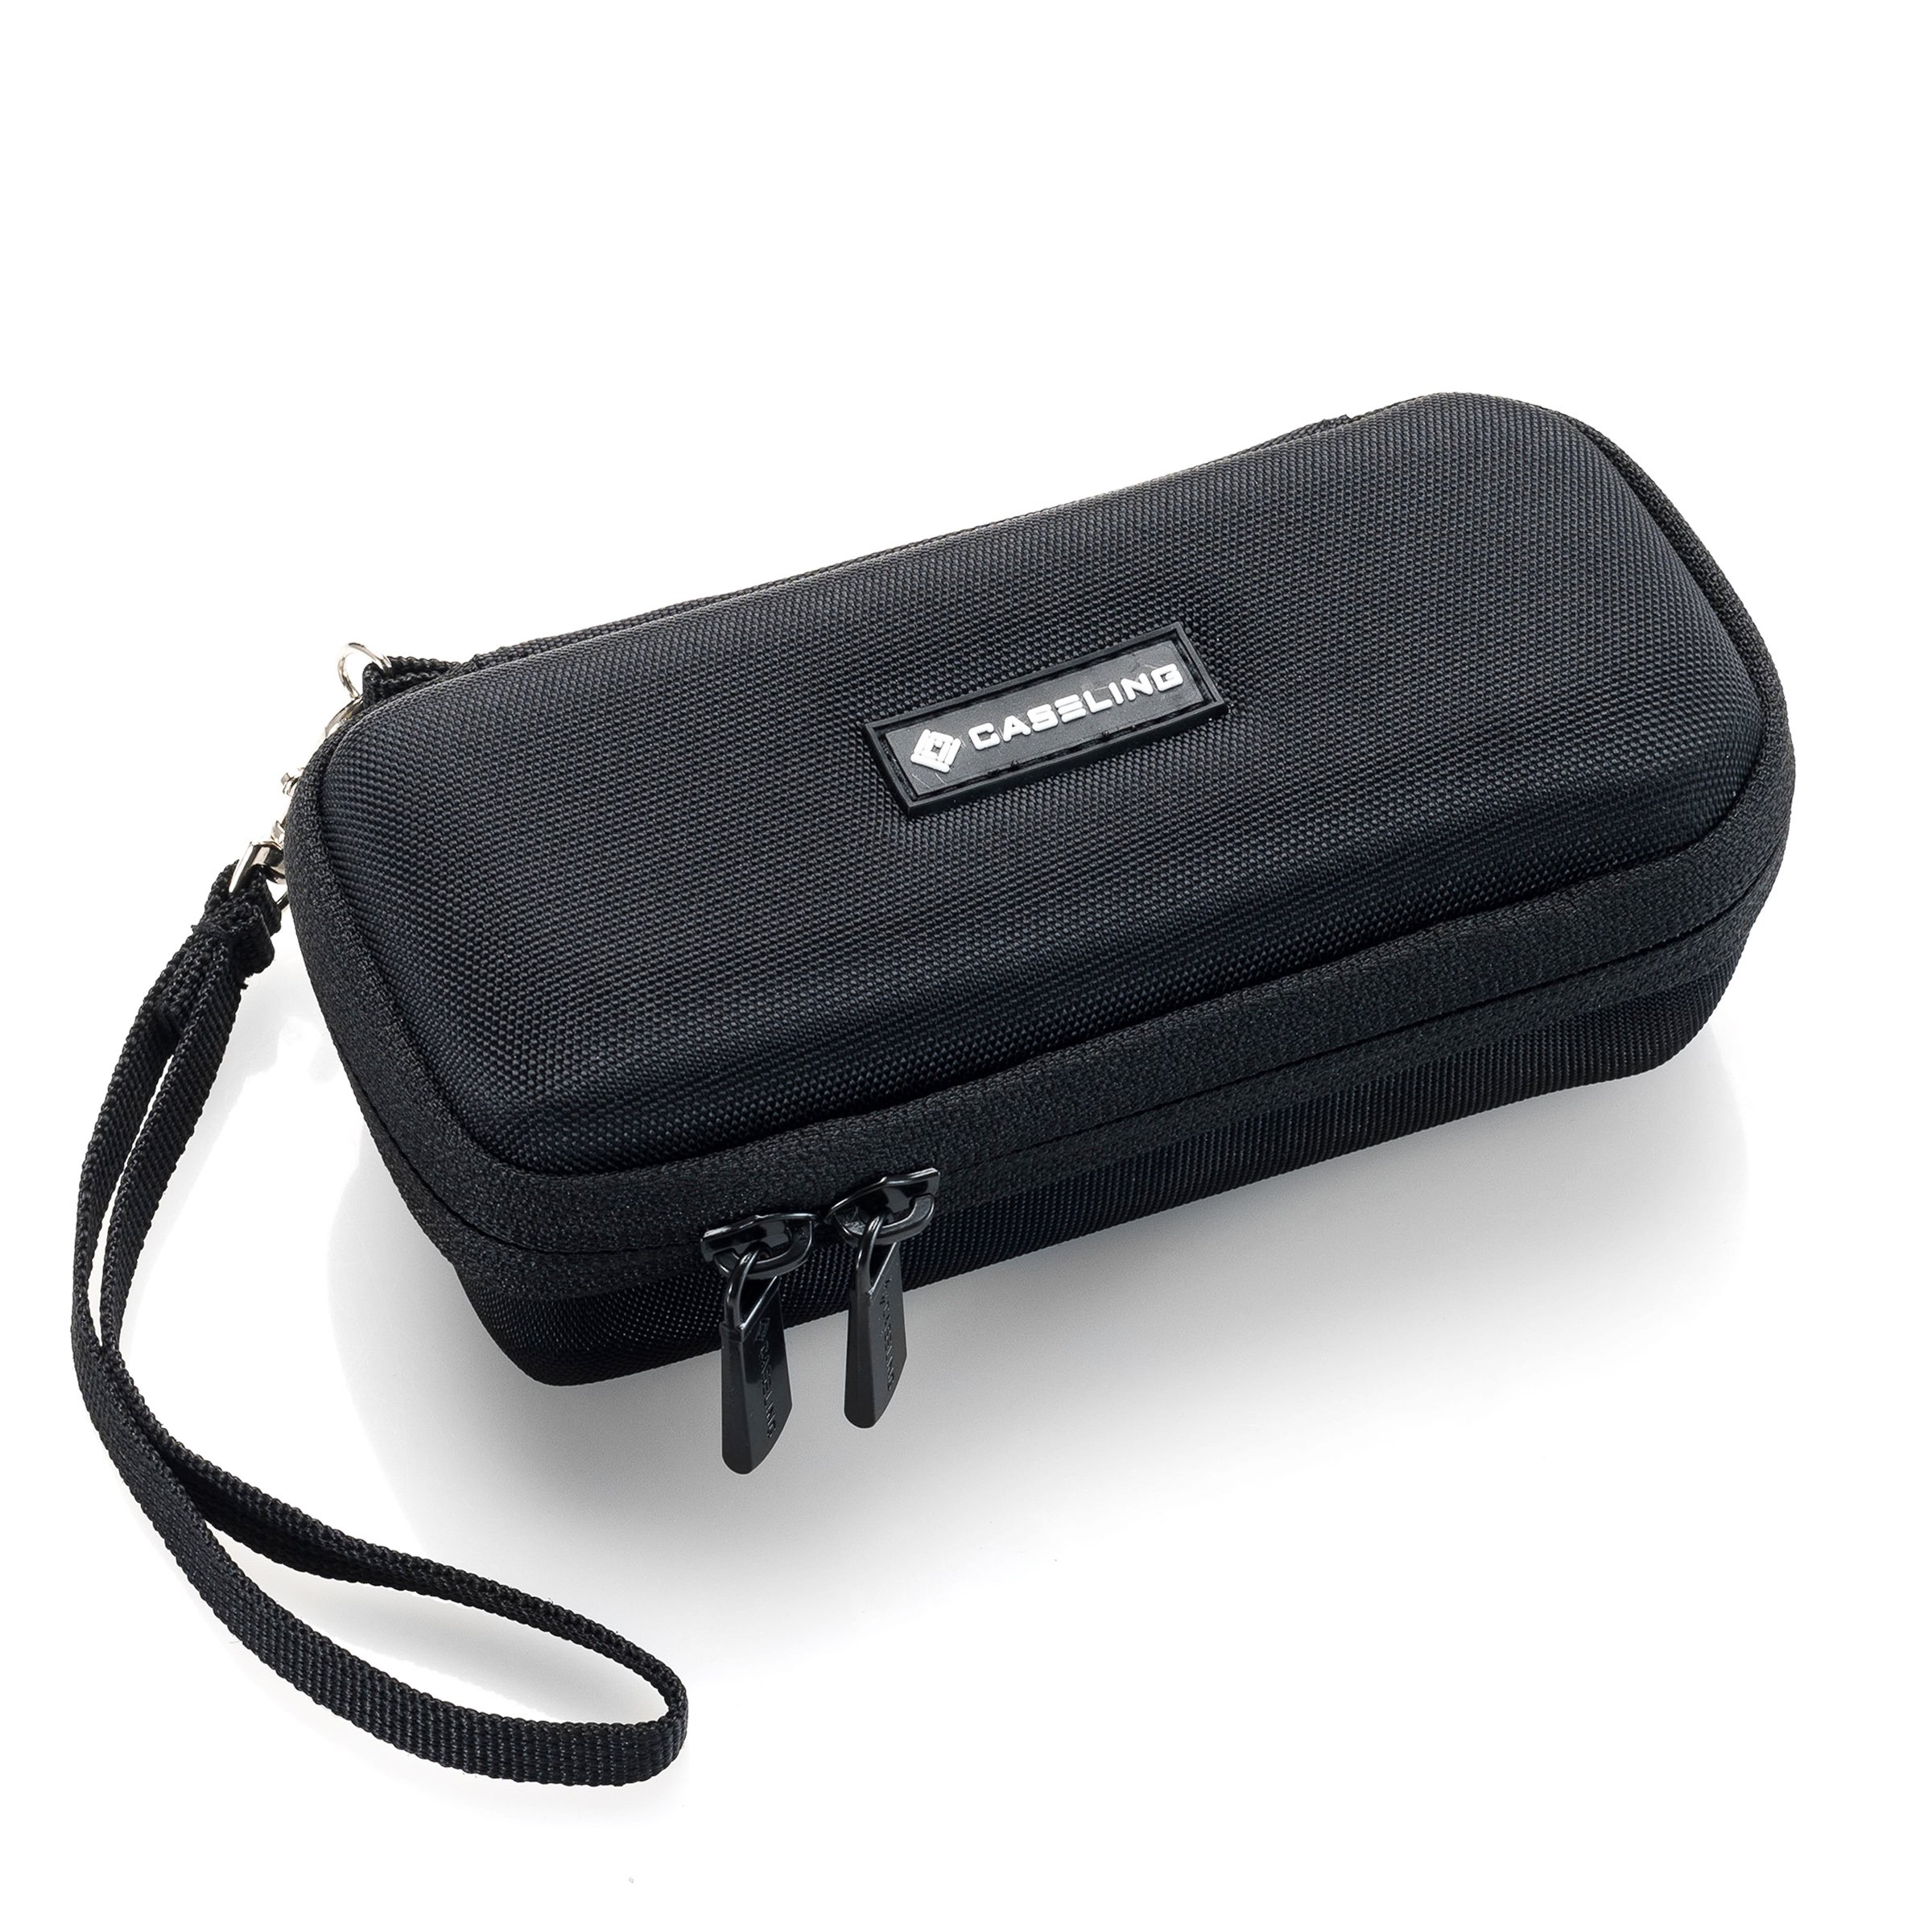 Hard CASE fits TASCAM DR-05 (Version 2/1) Portable Digital Recorder. - Includes Mesh Pocket for Accessories. by Caseling